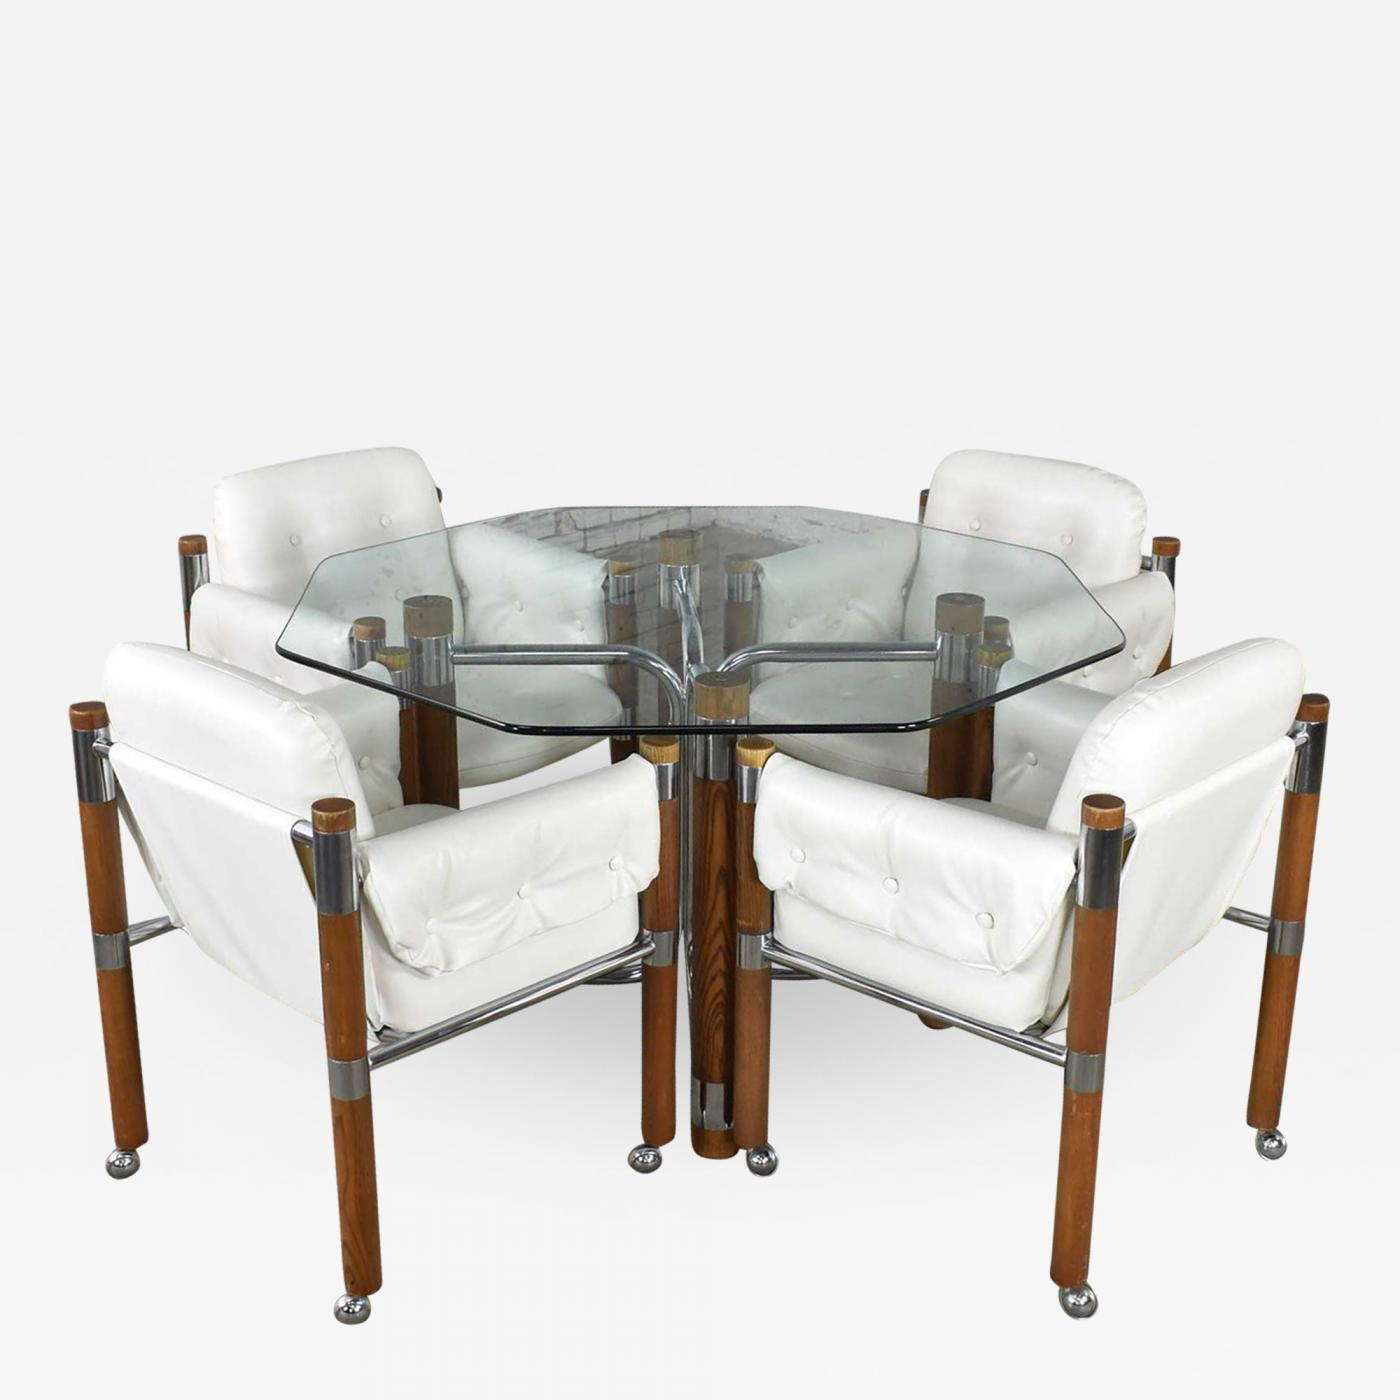 Modern Game Table Or Dining Table Glass Chrome Oak With 4 White Rolling Chairs